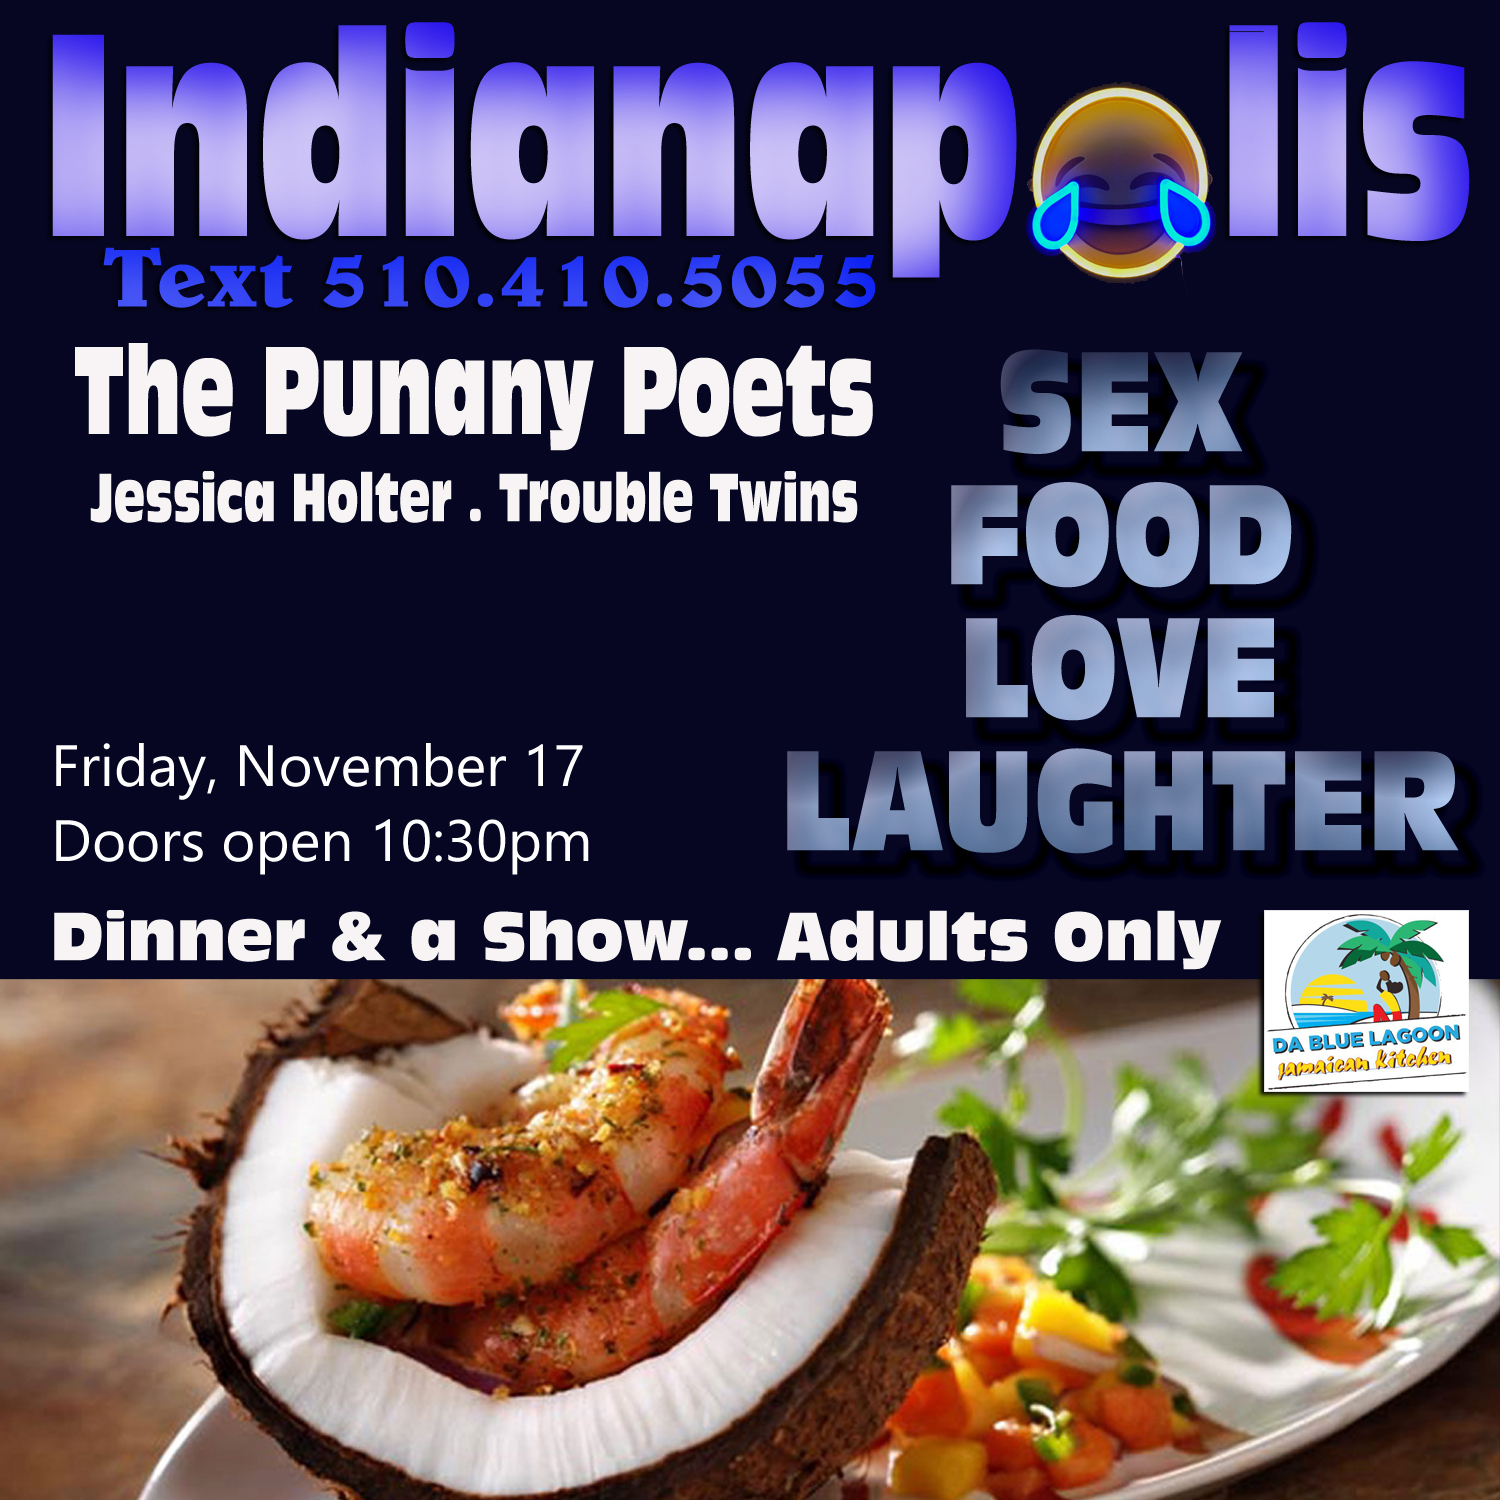 The Punany Poets in Indianapolis